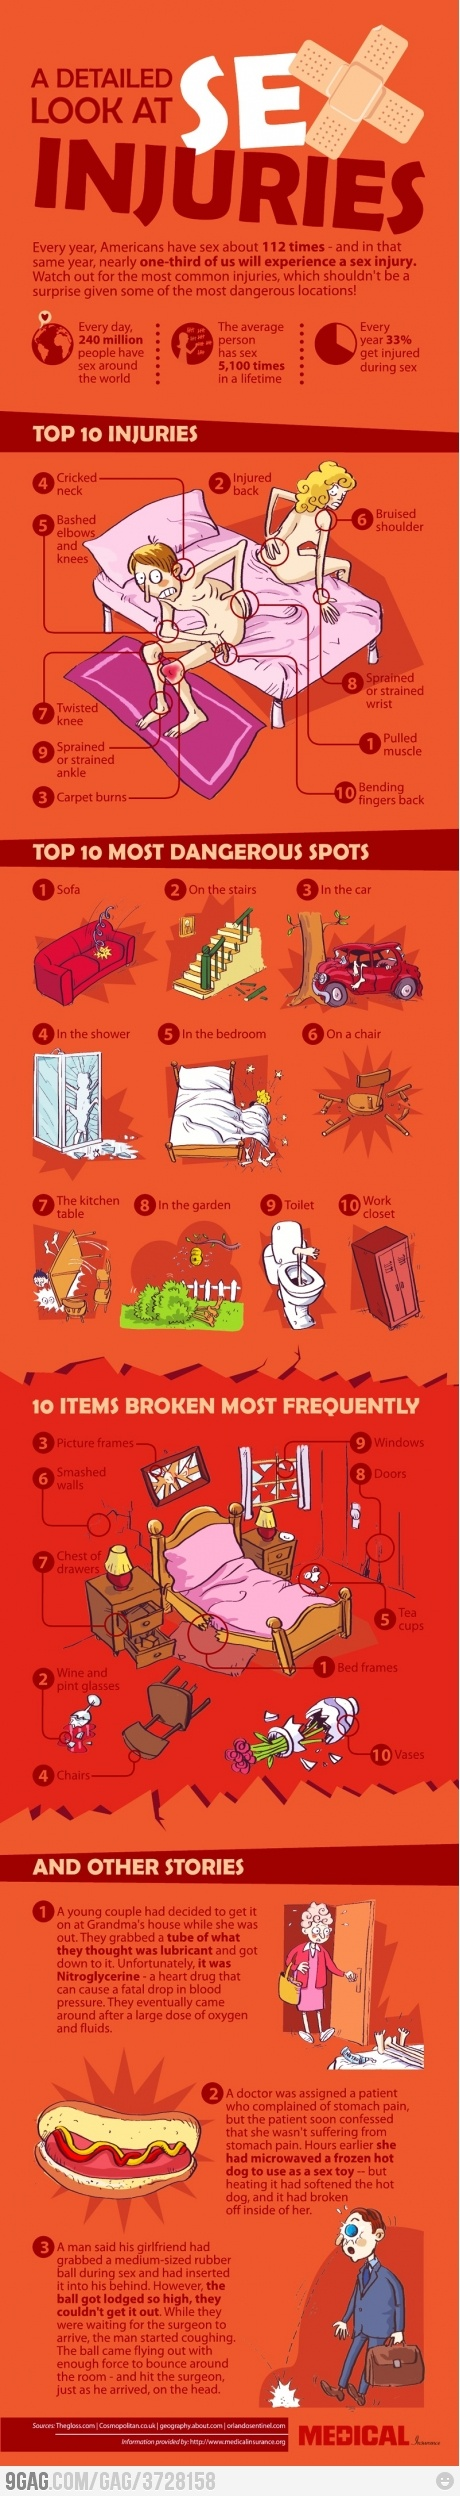 Sex injuries infographic: Laughing, Funny Stories, Funny Pictures, Injury Infographic, Sex Injury, Too Funny, Fun Facts, Things, Hilarious